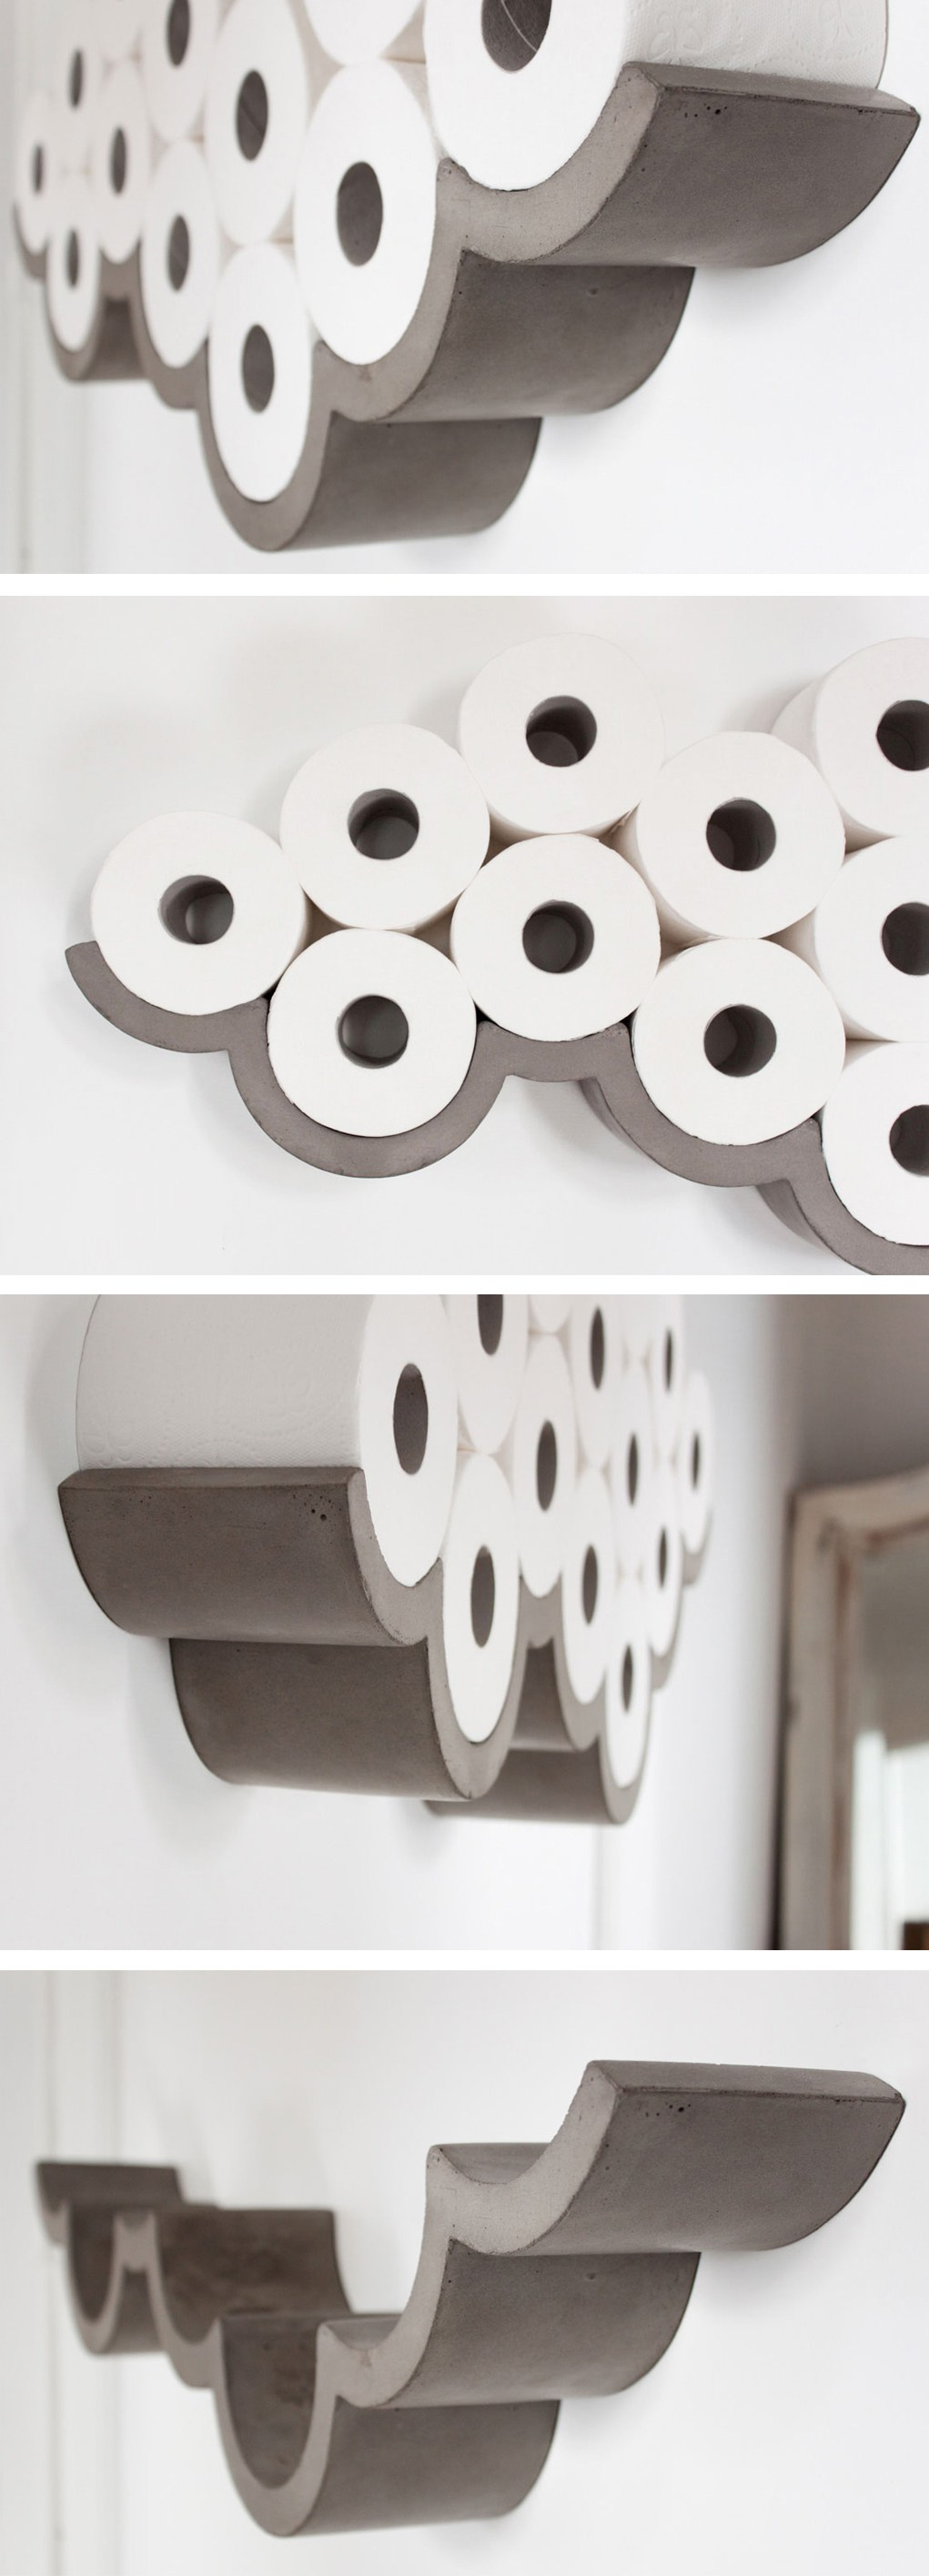 Paper Clouds Wall Decor : Best toilet paper holder ideas and designs for